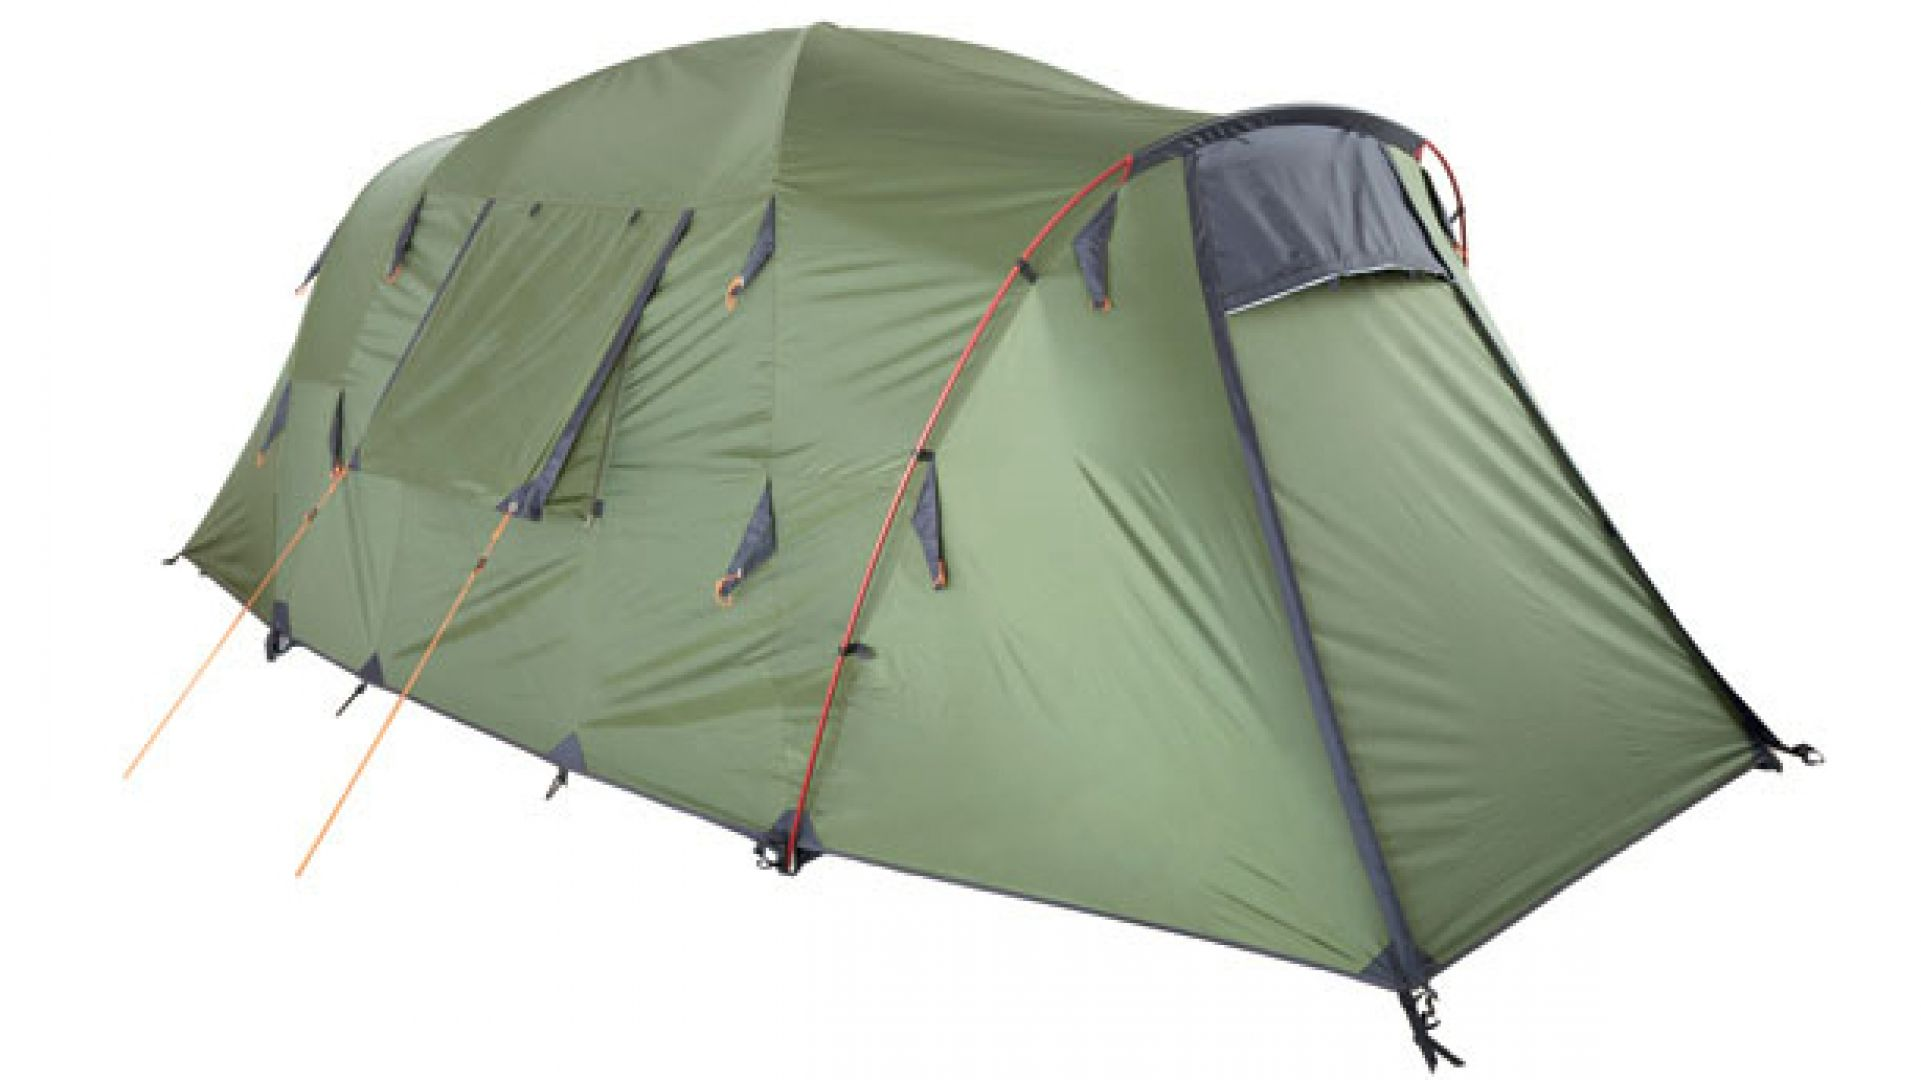 BLACKWOLF Tuff Dome Plus 6 person tent | Bairnsdale Camping & Outdoors